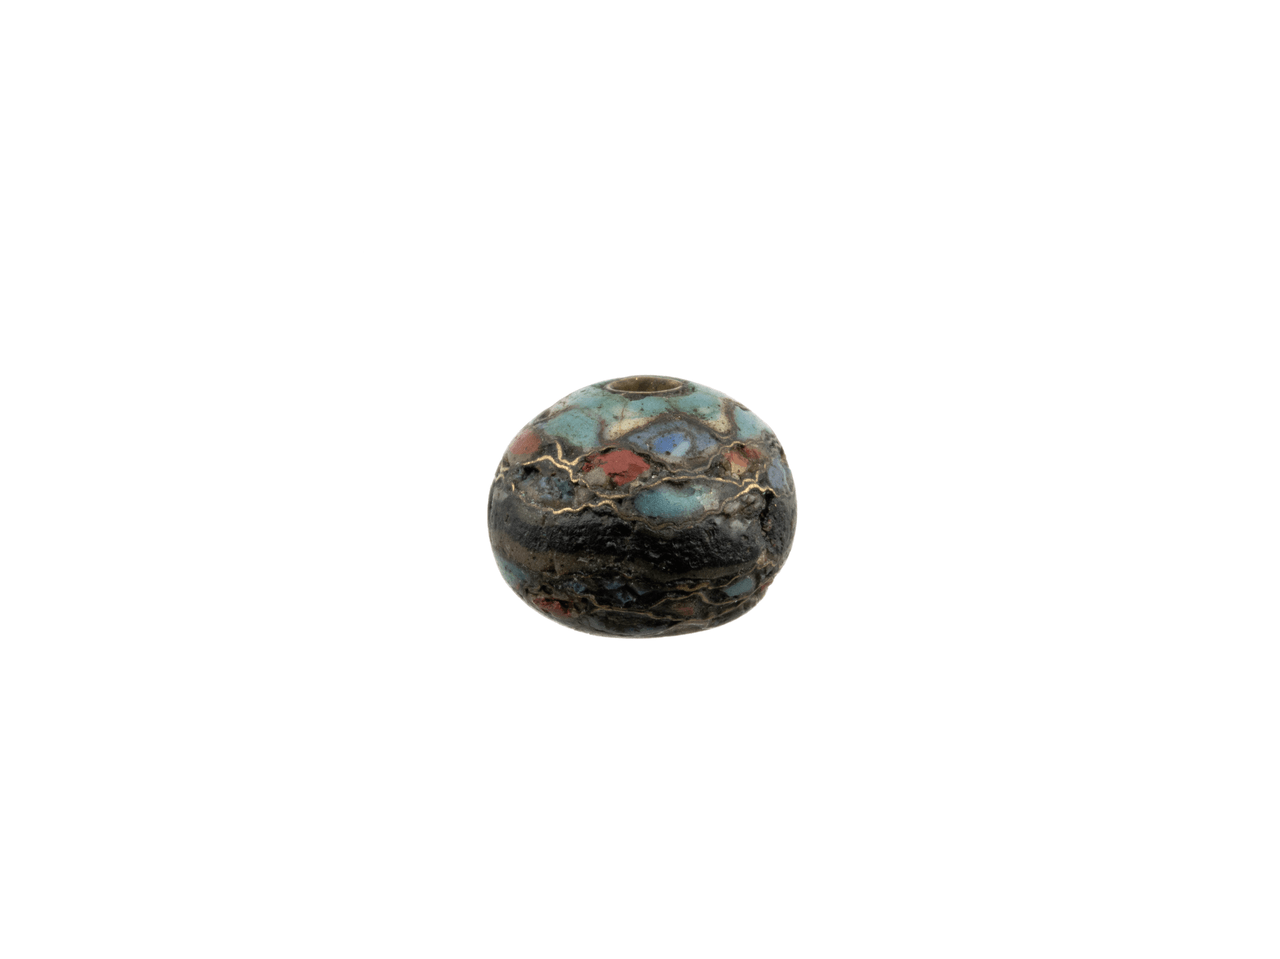 An Antique Japanese Primitive Enamel Cloisonné Ojime Bead